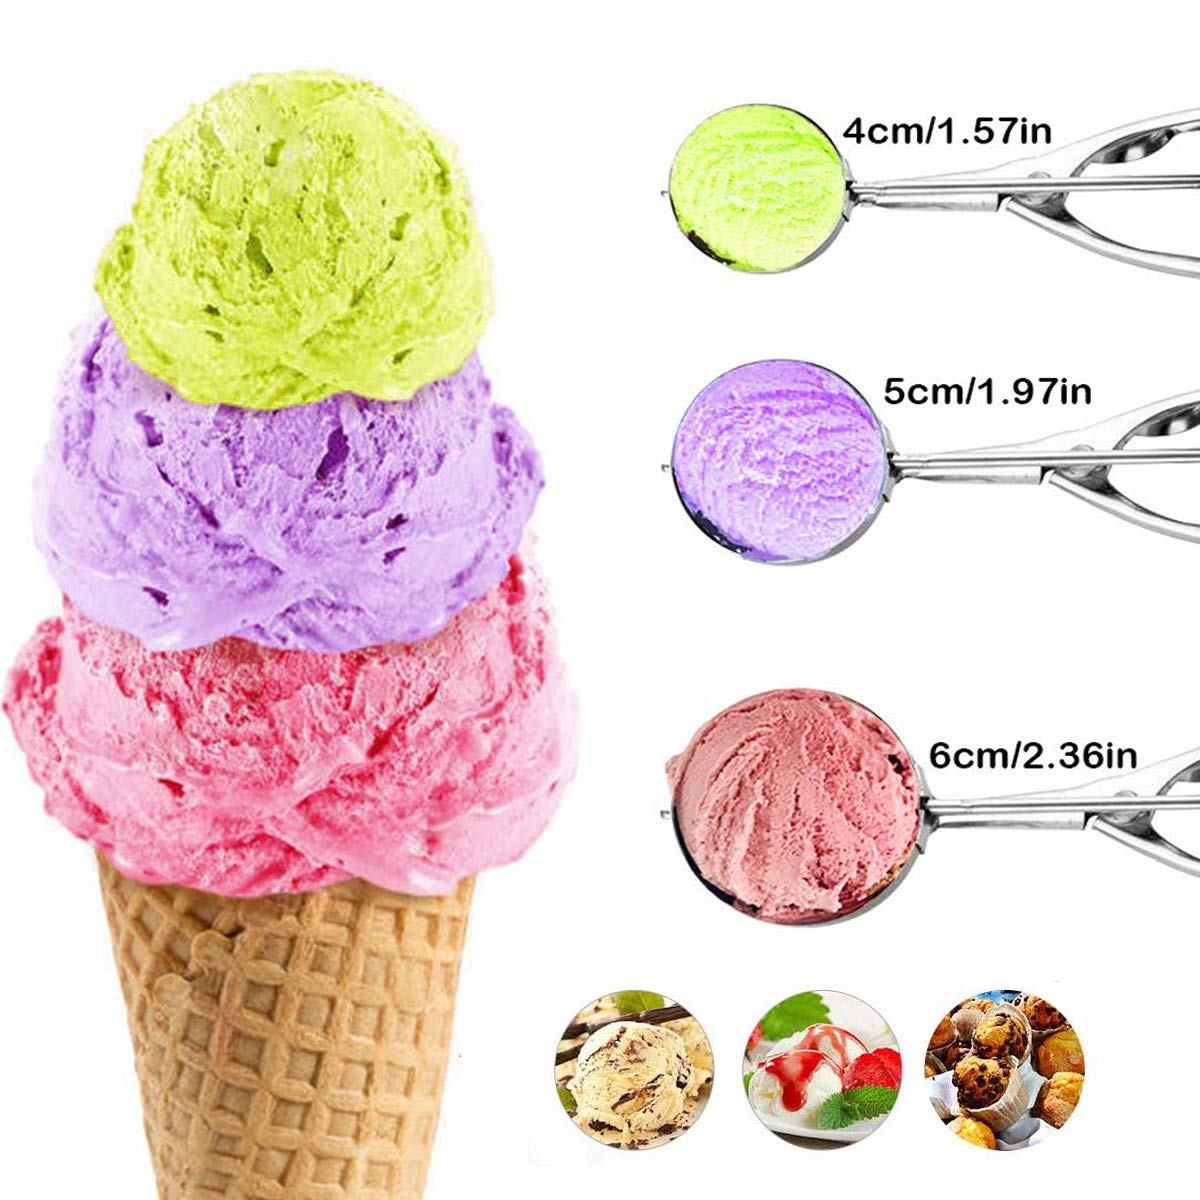 ice Cream Scoop with Trigger Mengger 6 Pcs Stainless Steel Scooper Professional Different Sizes Dipper for Fruits Water Melon Scoop